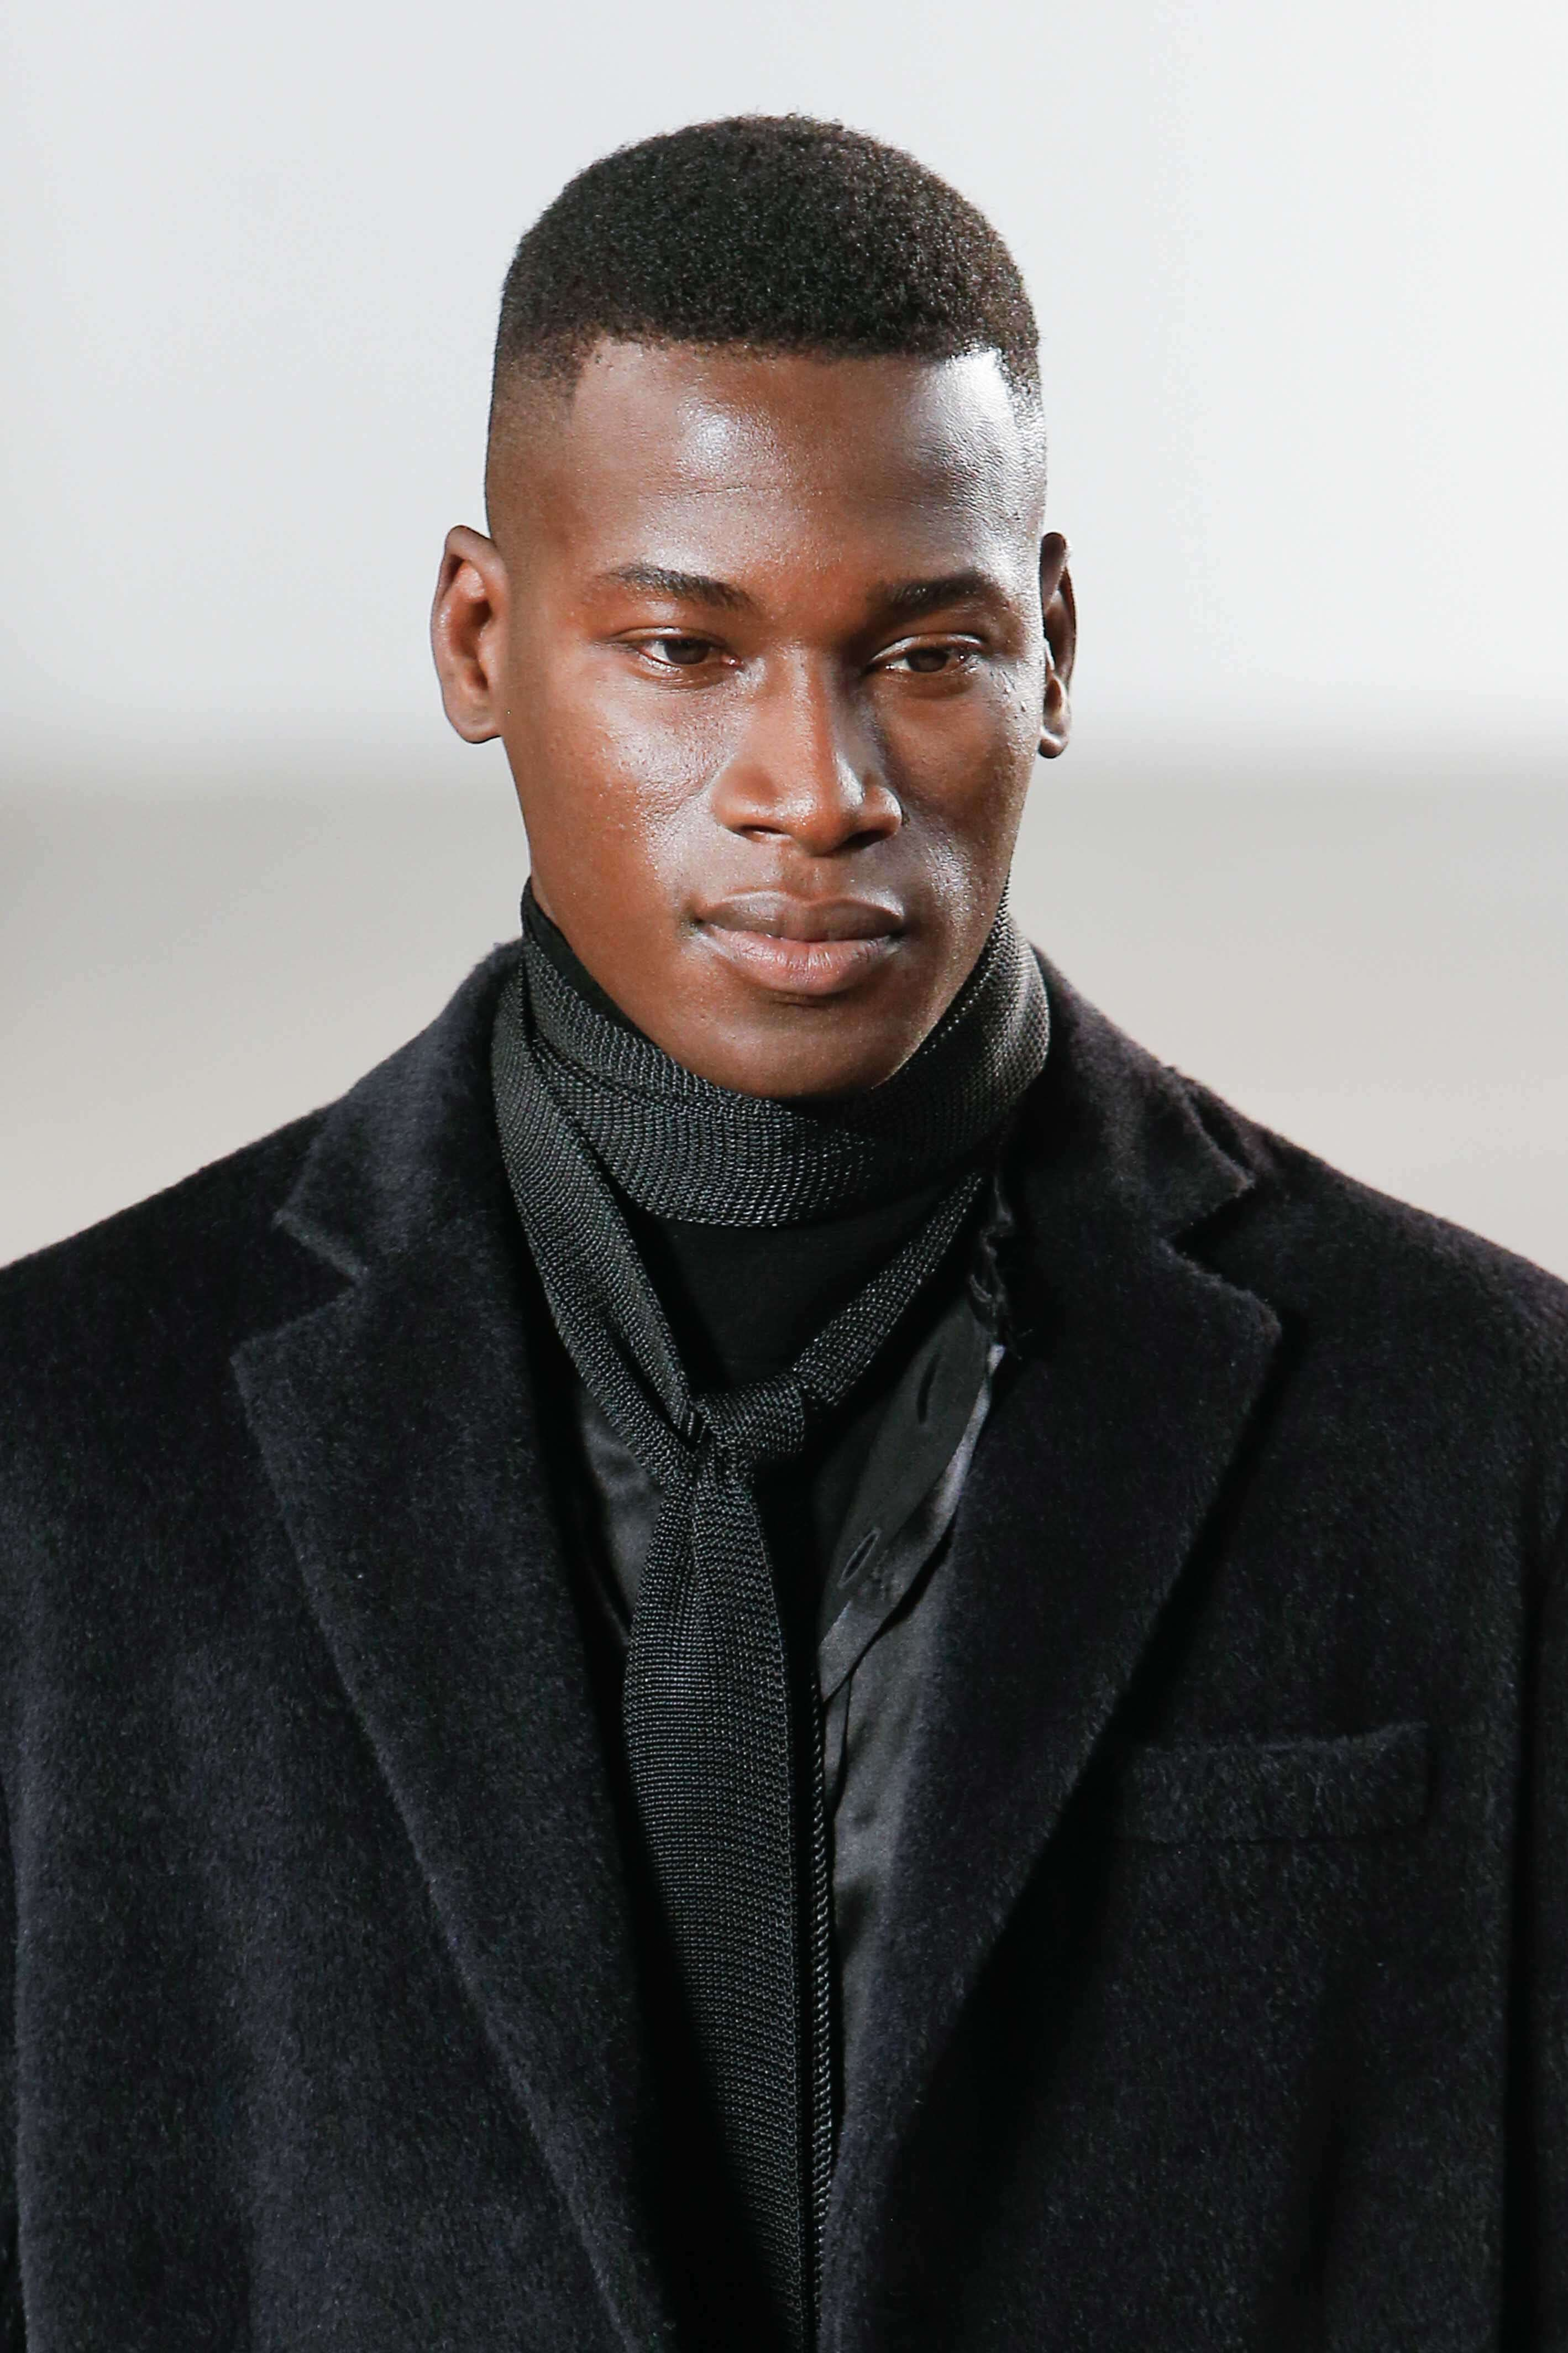 black man with high and tight haircut